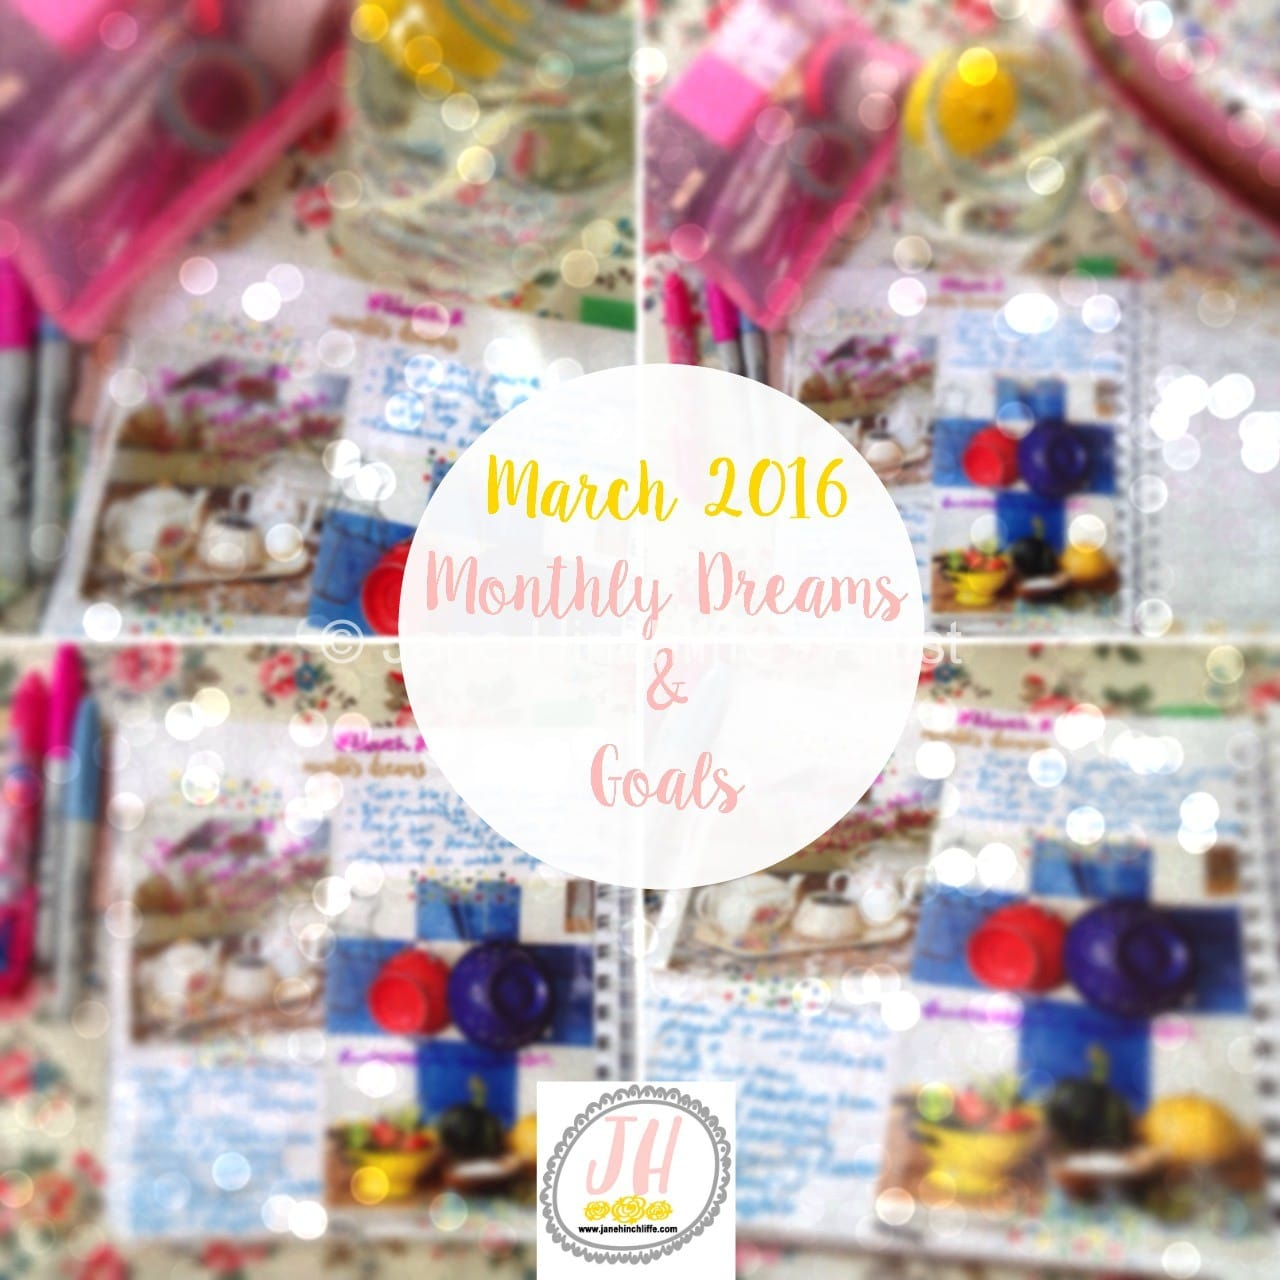 March 2016 monthly dreams and goals